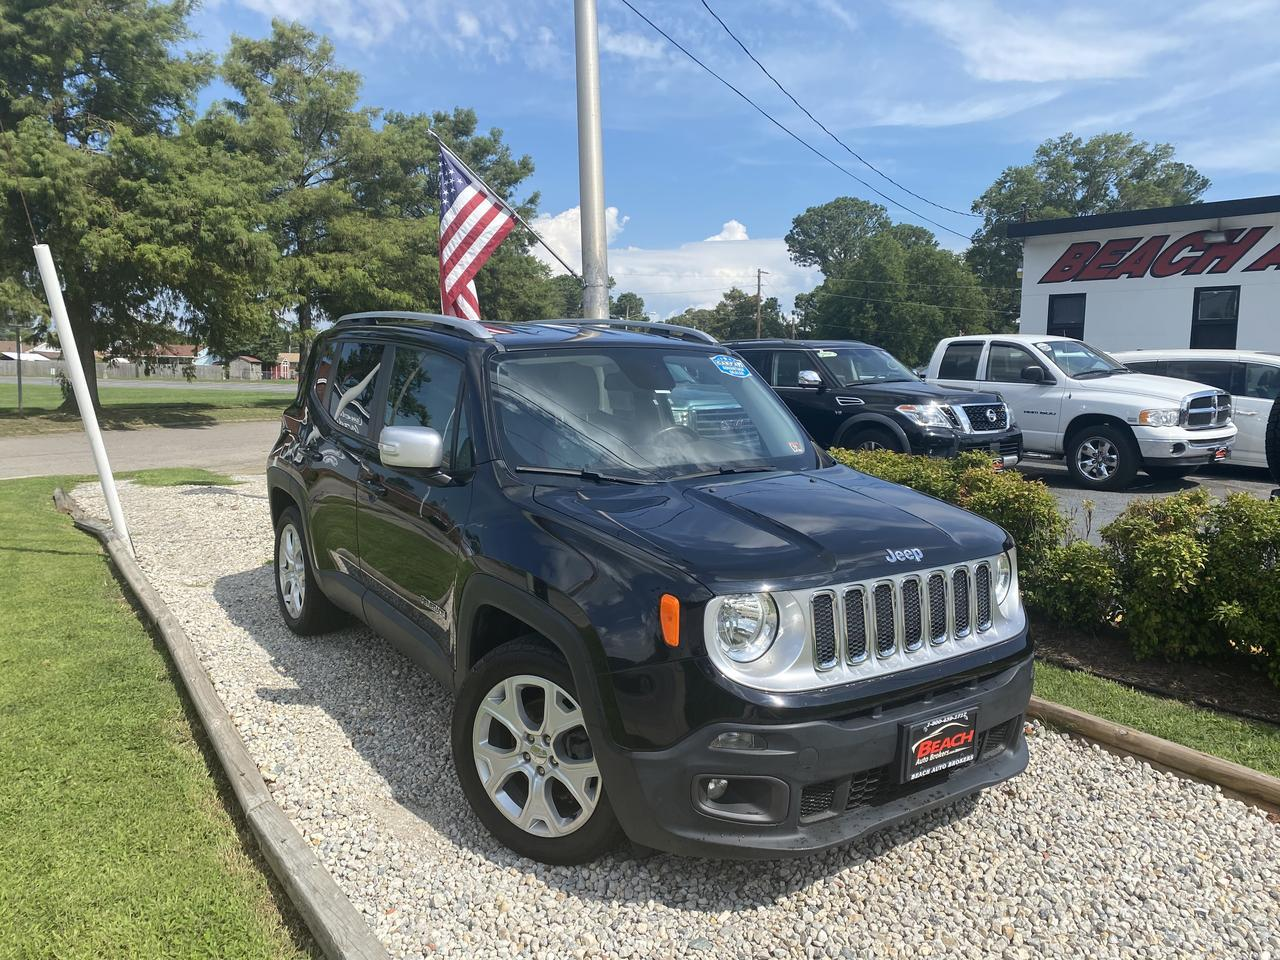 2015 JEEP RENEGADE LIMITED, WARRANTY, HEATED FRONT SEATS, HEATED STEERING WHEEL, BACKUP CAM, BLUETOOTH, 1 OWNER!